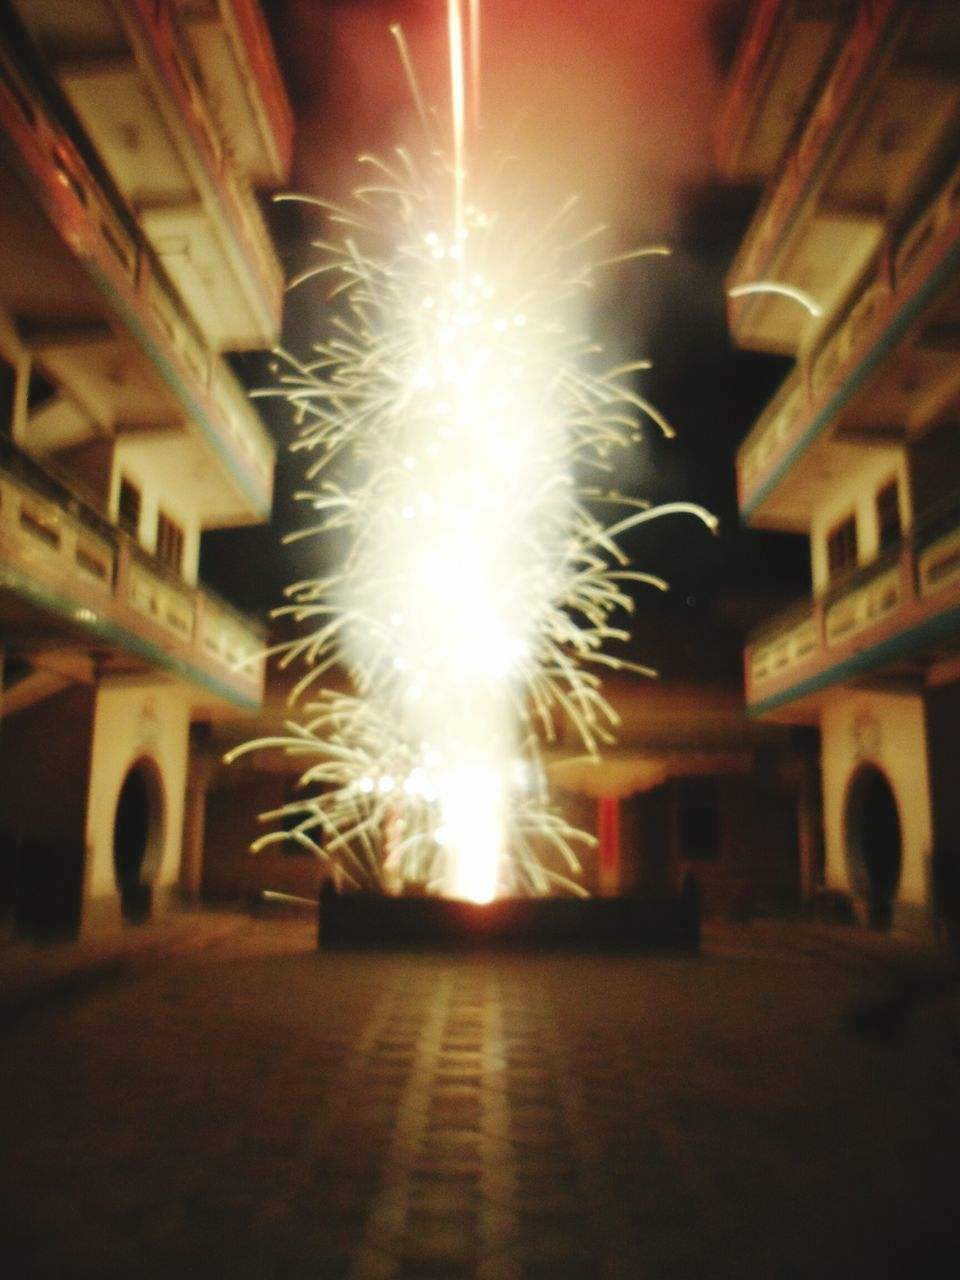 night, illuminated, glowing, celebration, built structure, architecture, firework - man made object, building exterior, long exposure, low angle view, no people, firework display, motion, outdoors, city, sky